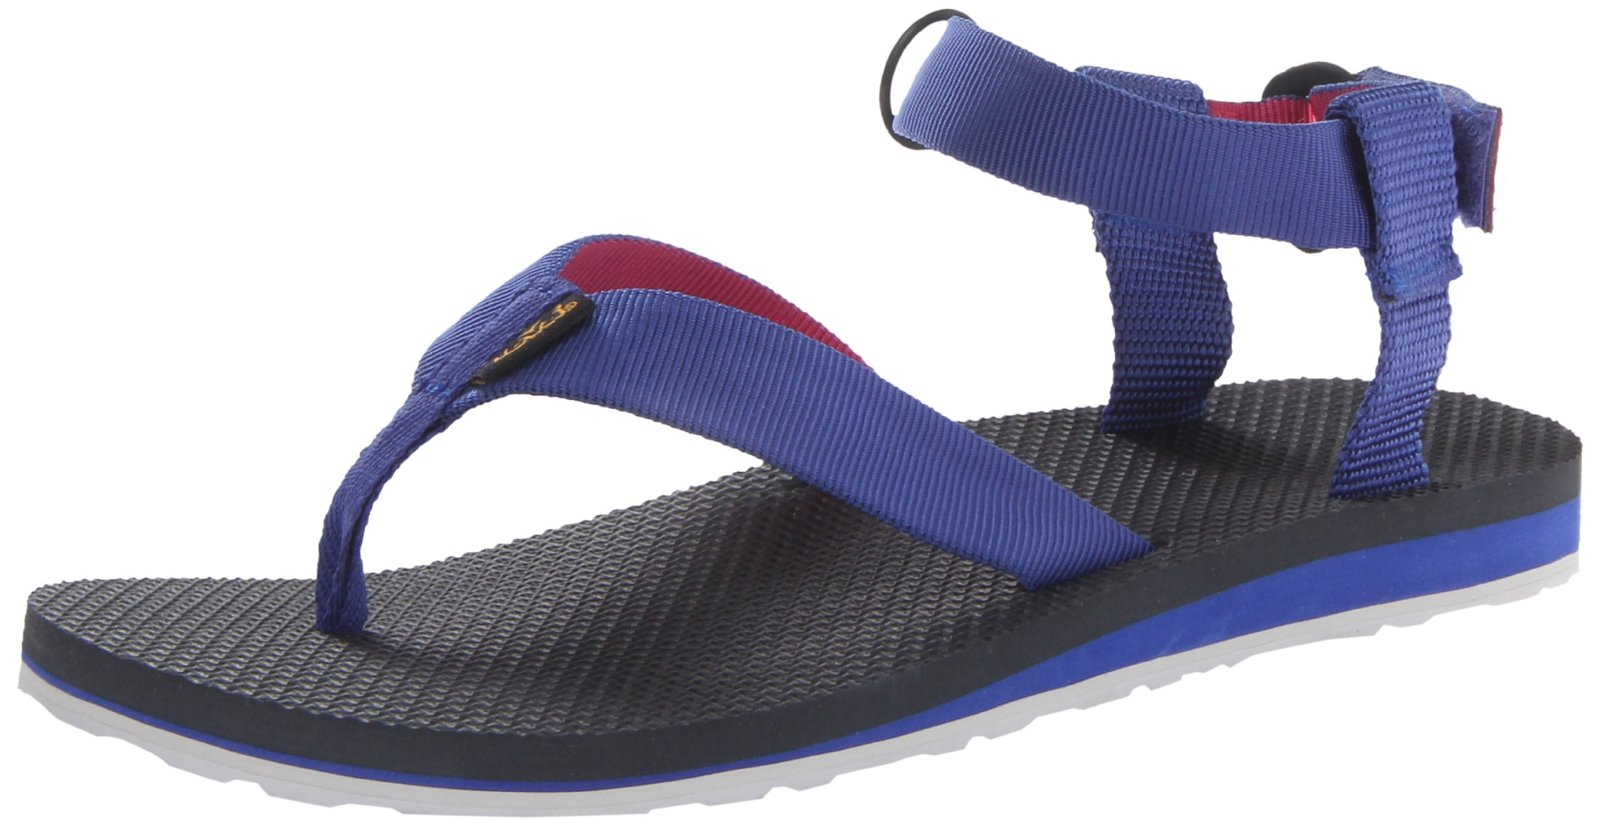 Teva Women's Original Sandal,Dark Blue/Pink,5 M US